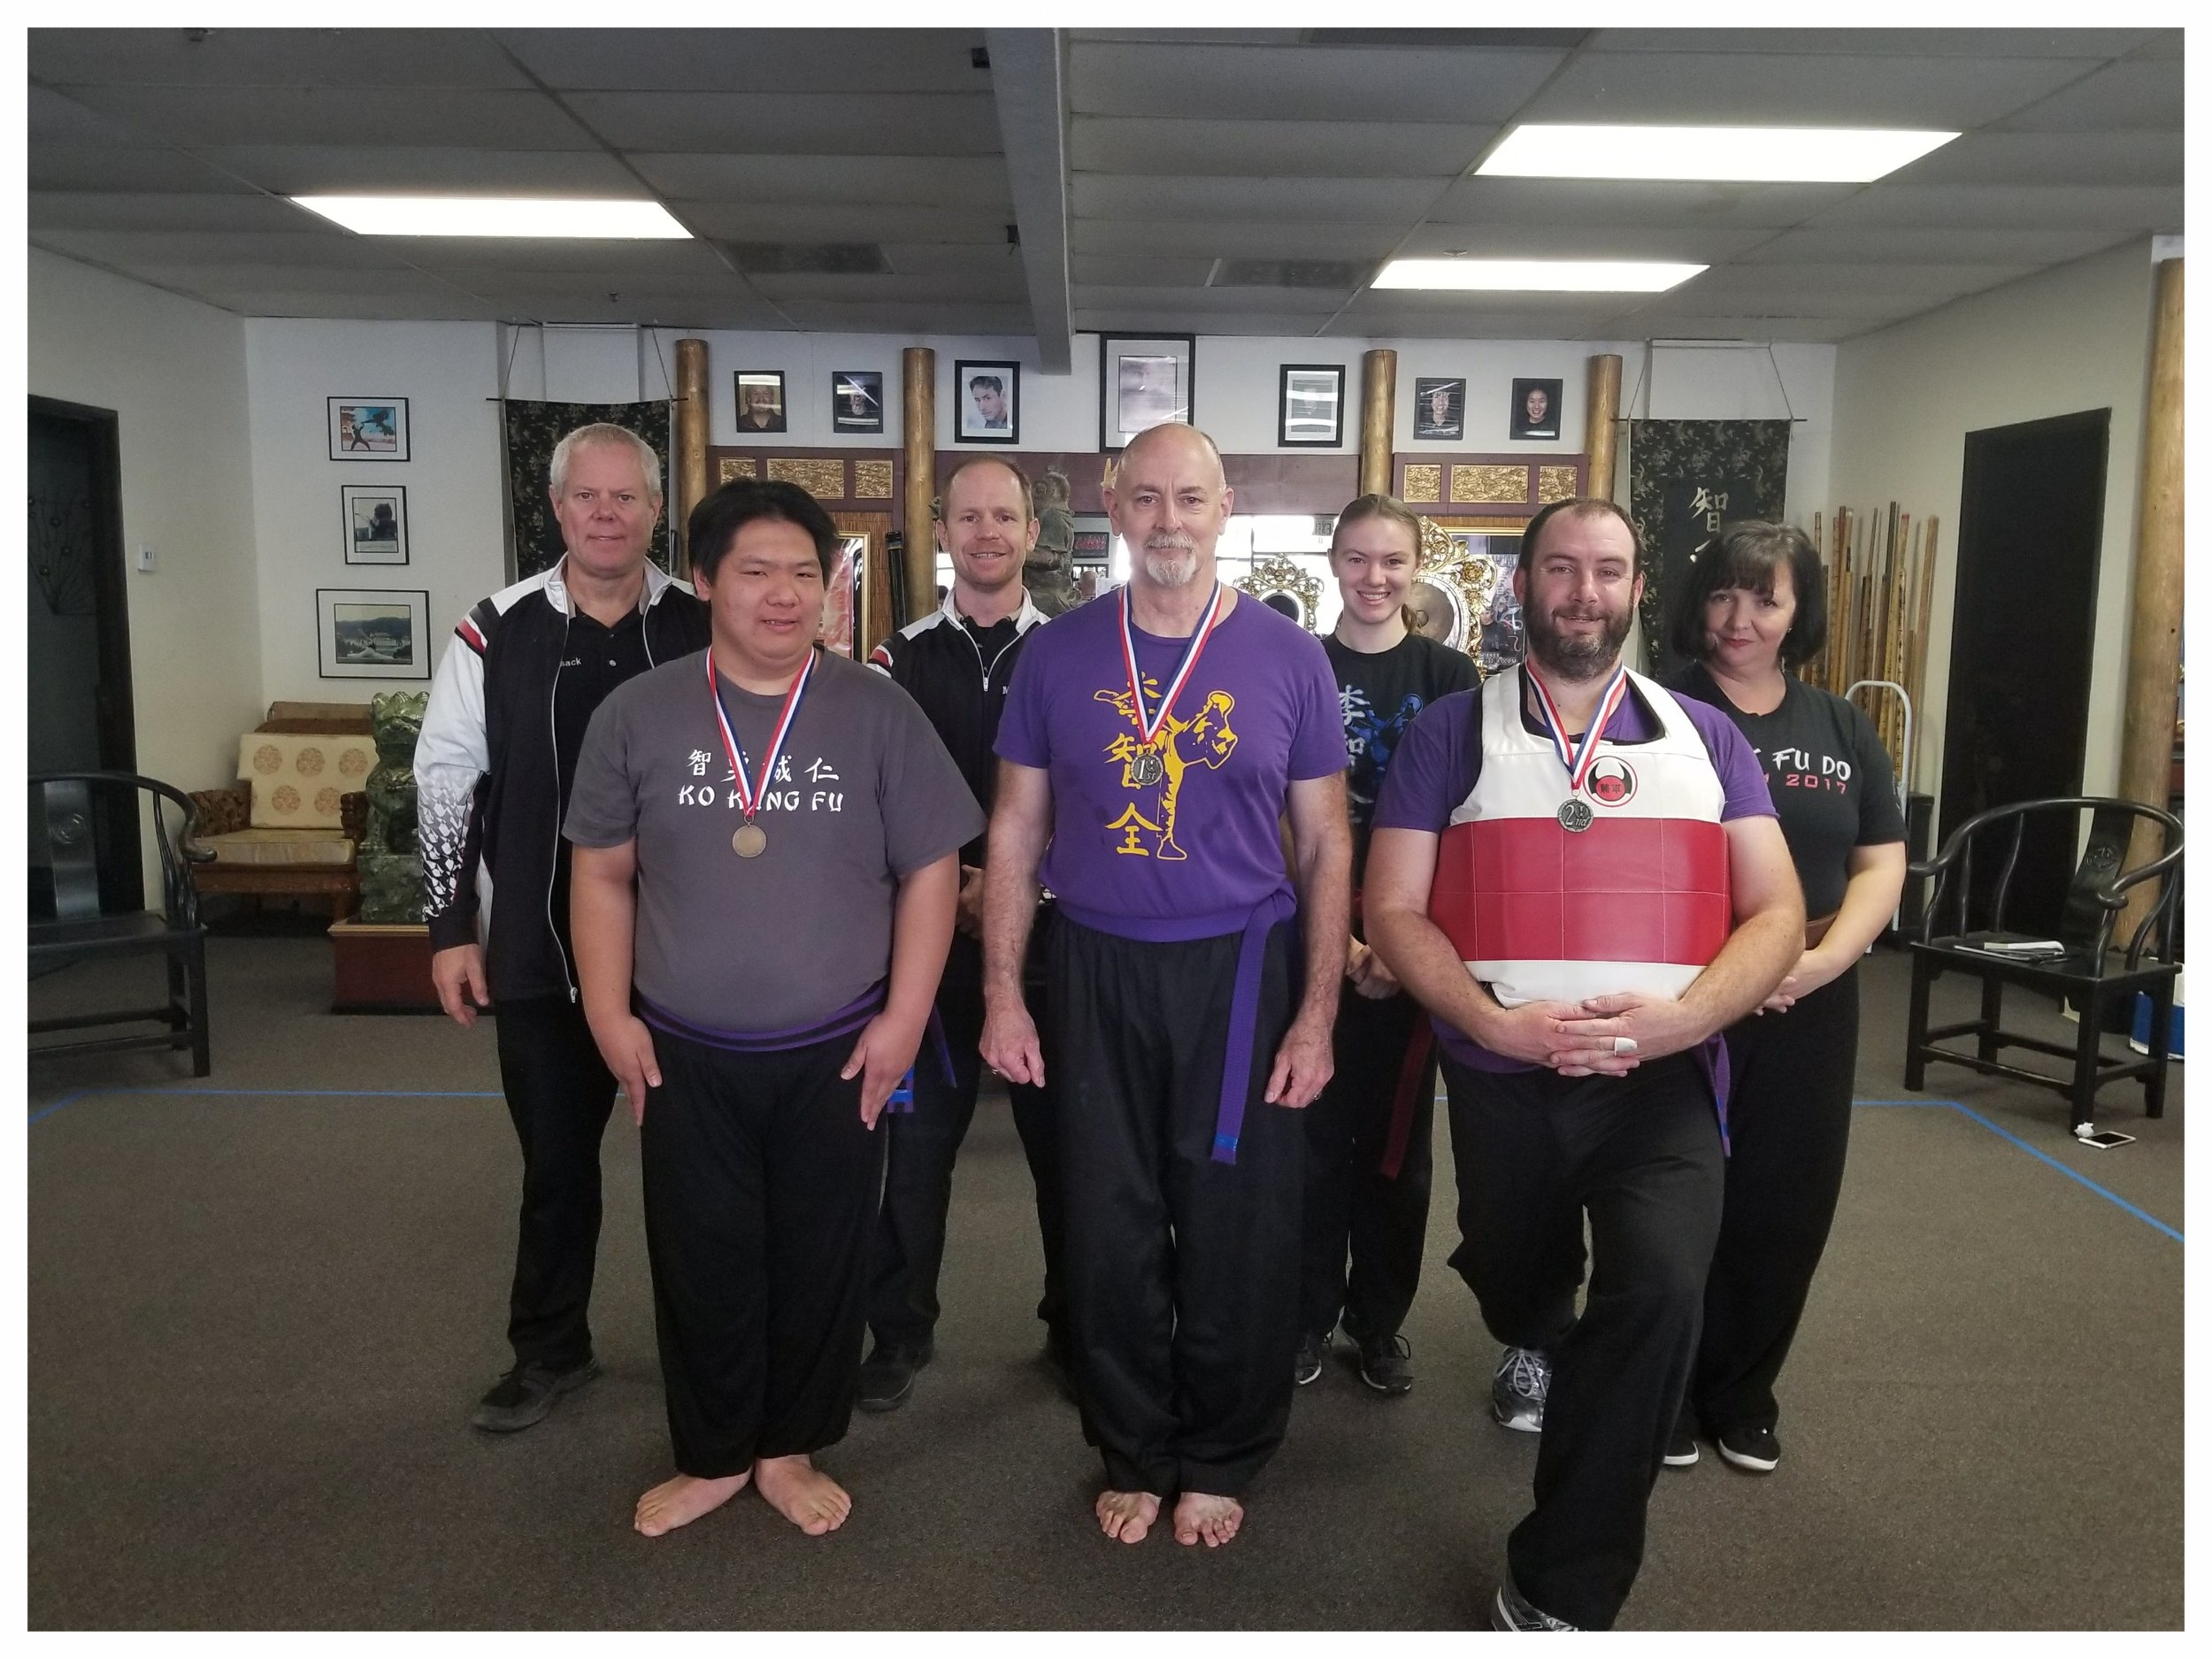 Arik Broman and fellow competitors receive their medals for the Kenpo Weapons division at the West Coast Regional Winter Kuo Shu Championship Tournament, 2018